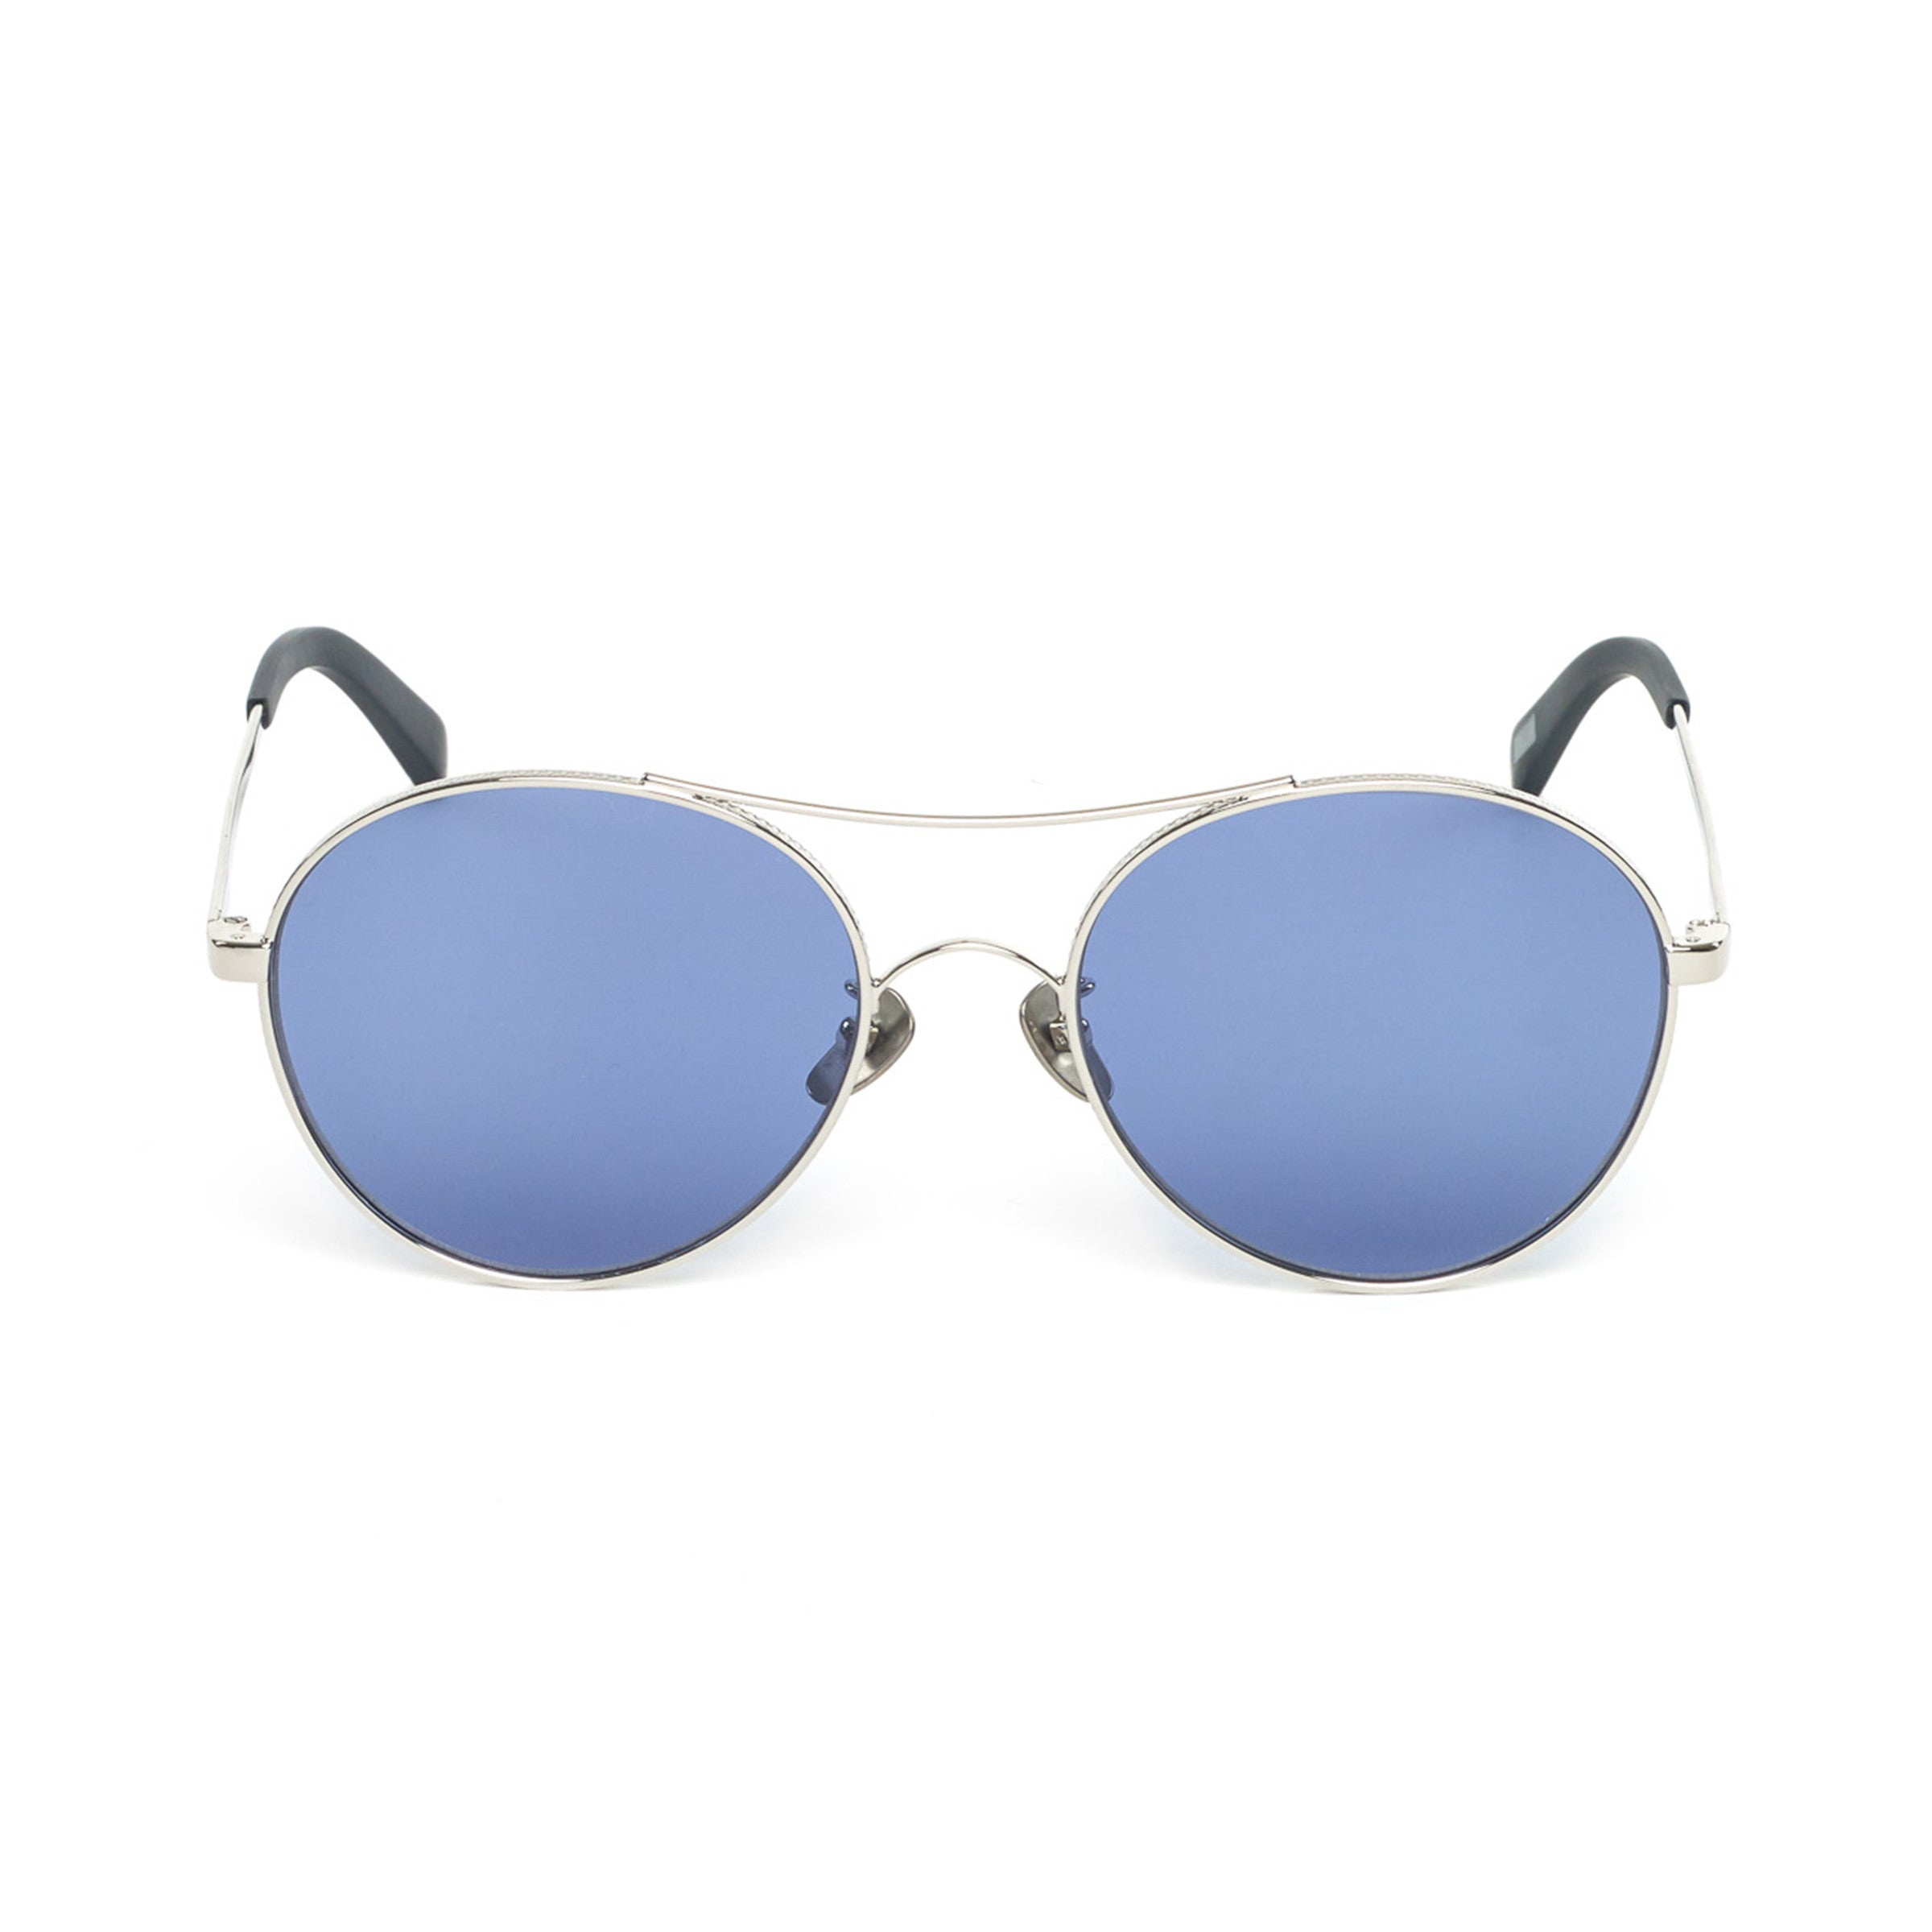 Azzure Silvers: Rounded Aviator-style Sunglasses, Silver Azure